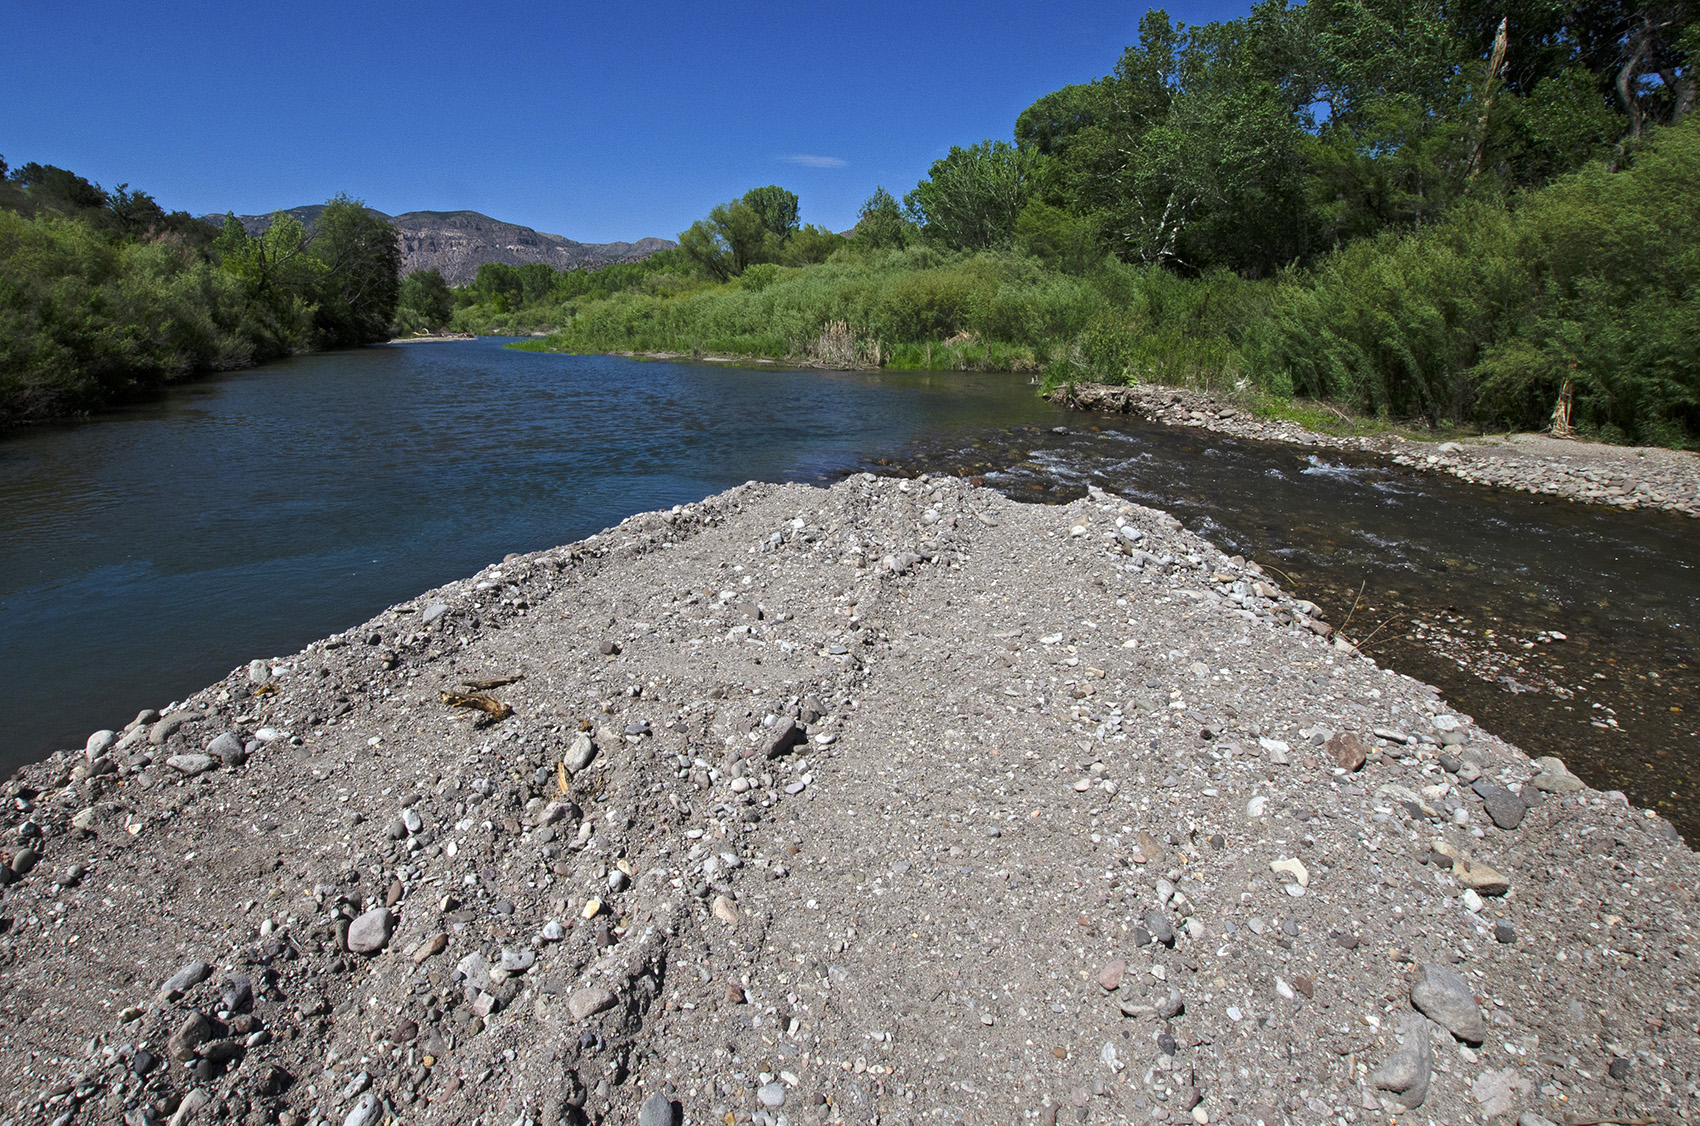 Farmers in the Cliff-Gila Valley redirect river water via simple berms, including this one near the site where the New Mexico Central Arizona Project Entity proposes to build a permanent diversion.